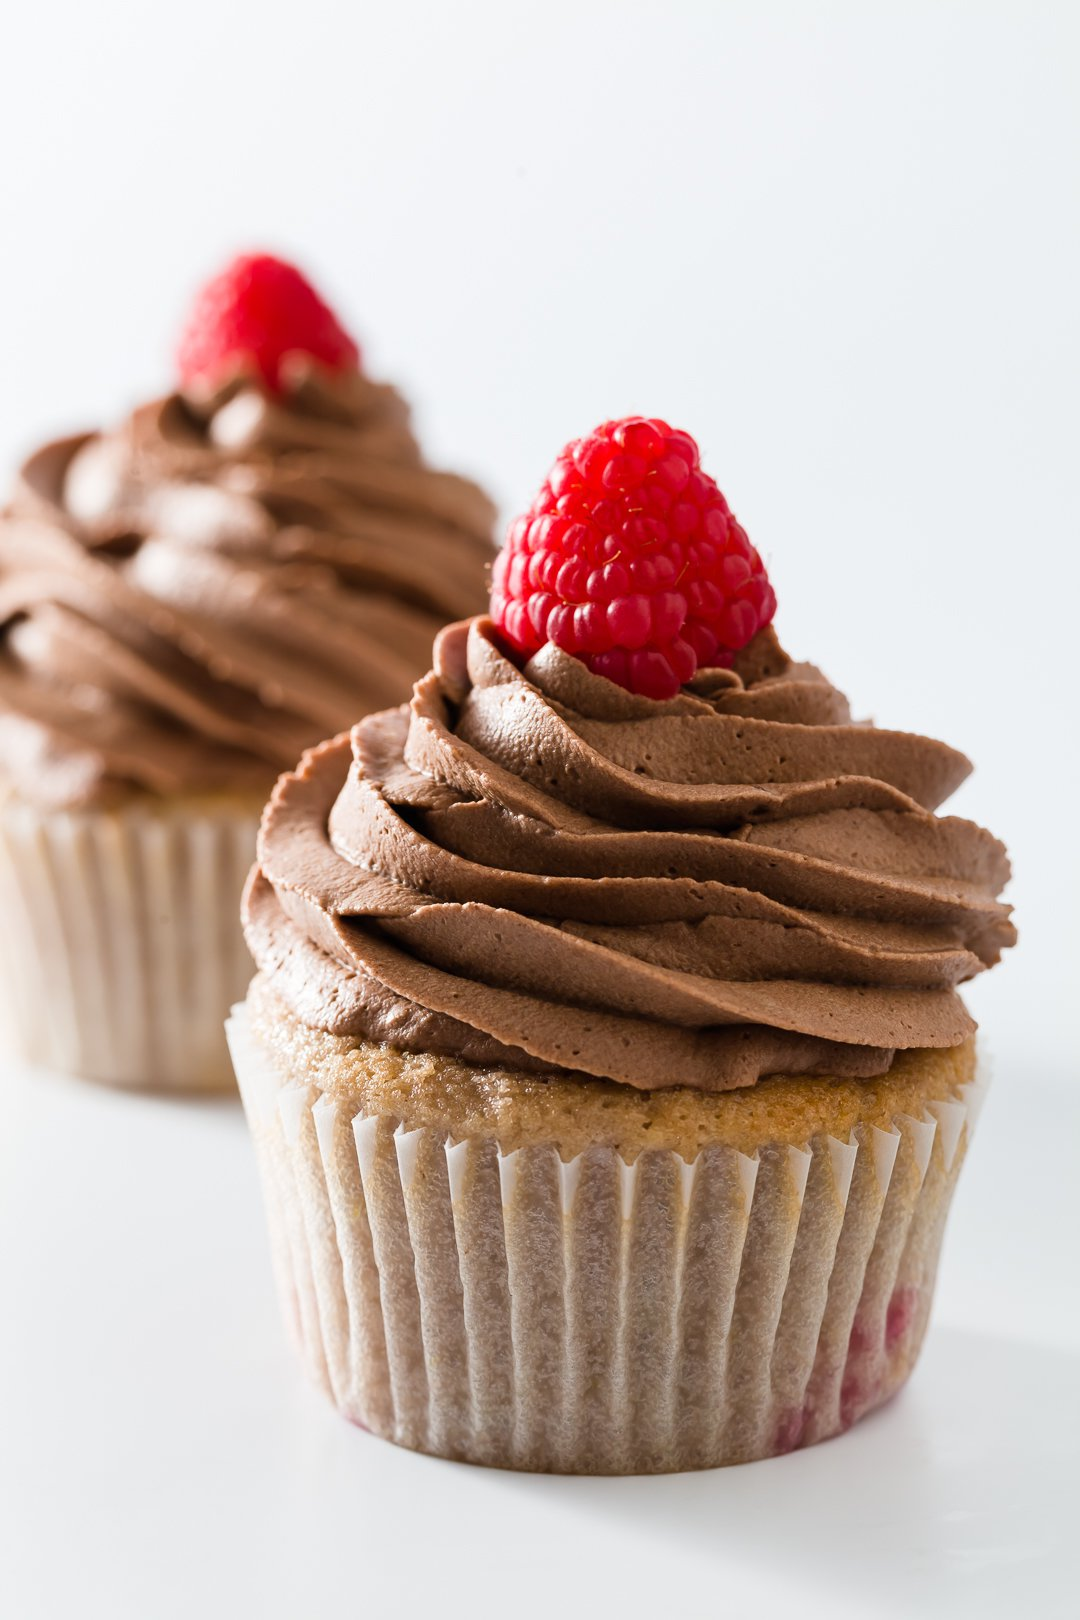 Two raspberry cupcakes frosted with chocolate whipped cream and topped with fresh raspberries